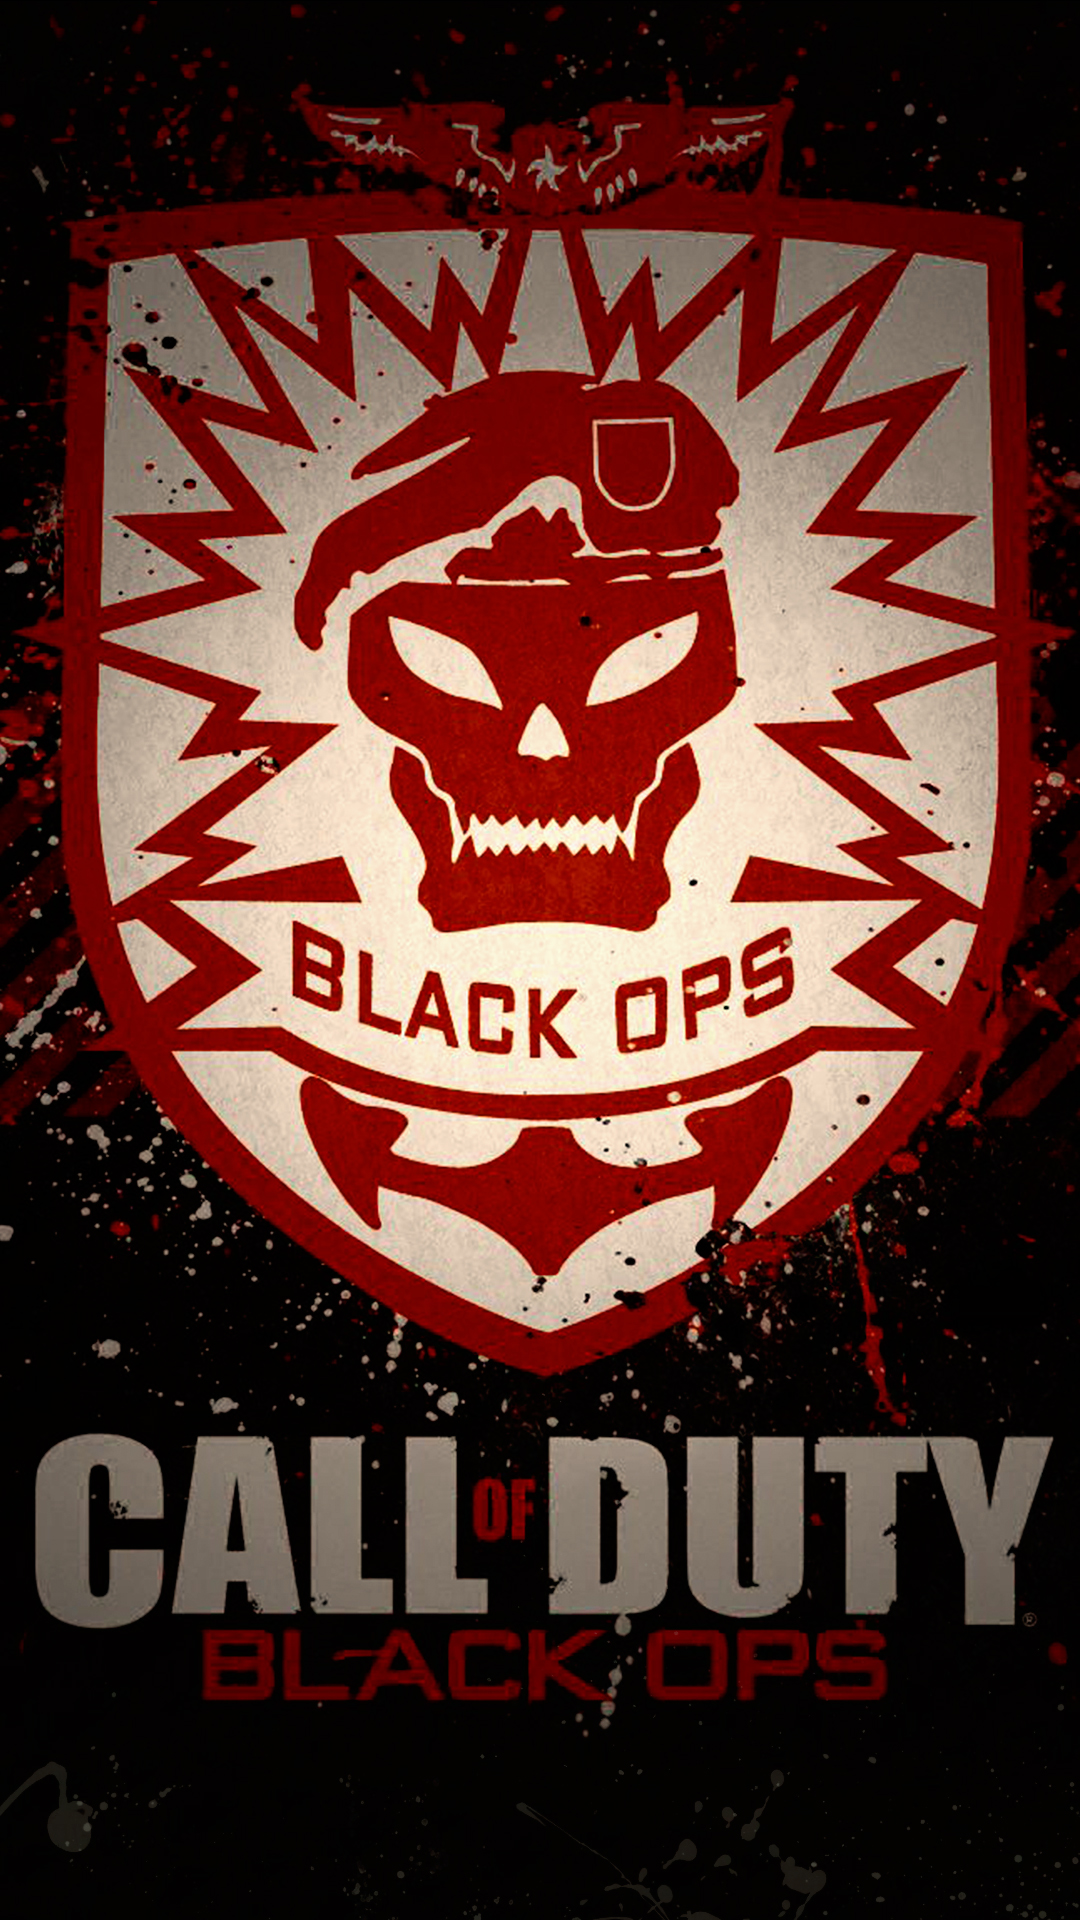 Call Of Duty Ww2 Iphone Wallpaper Black Ops Zombies Hd Iphone 6 Wallpaper Background